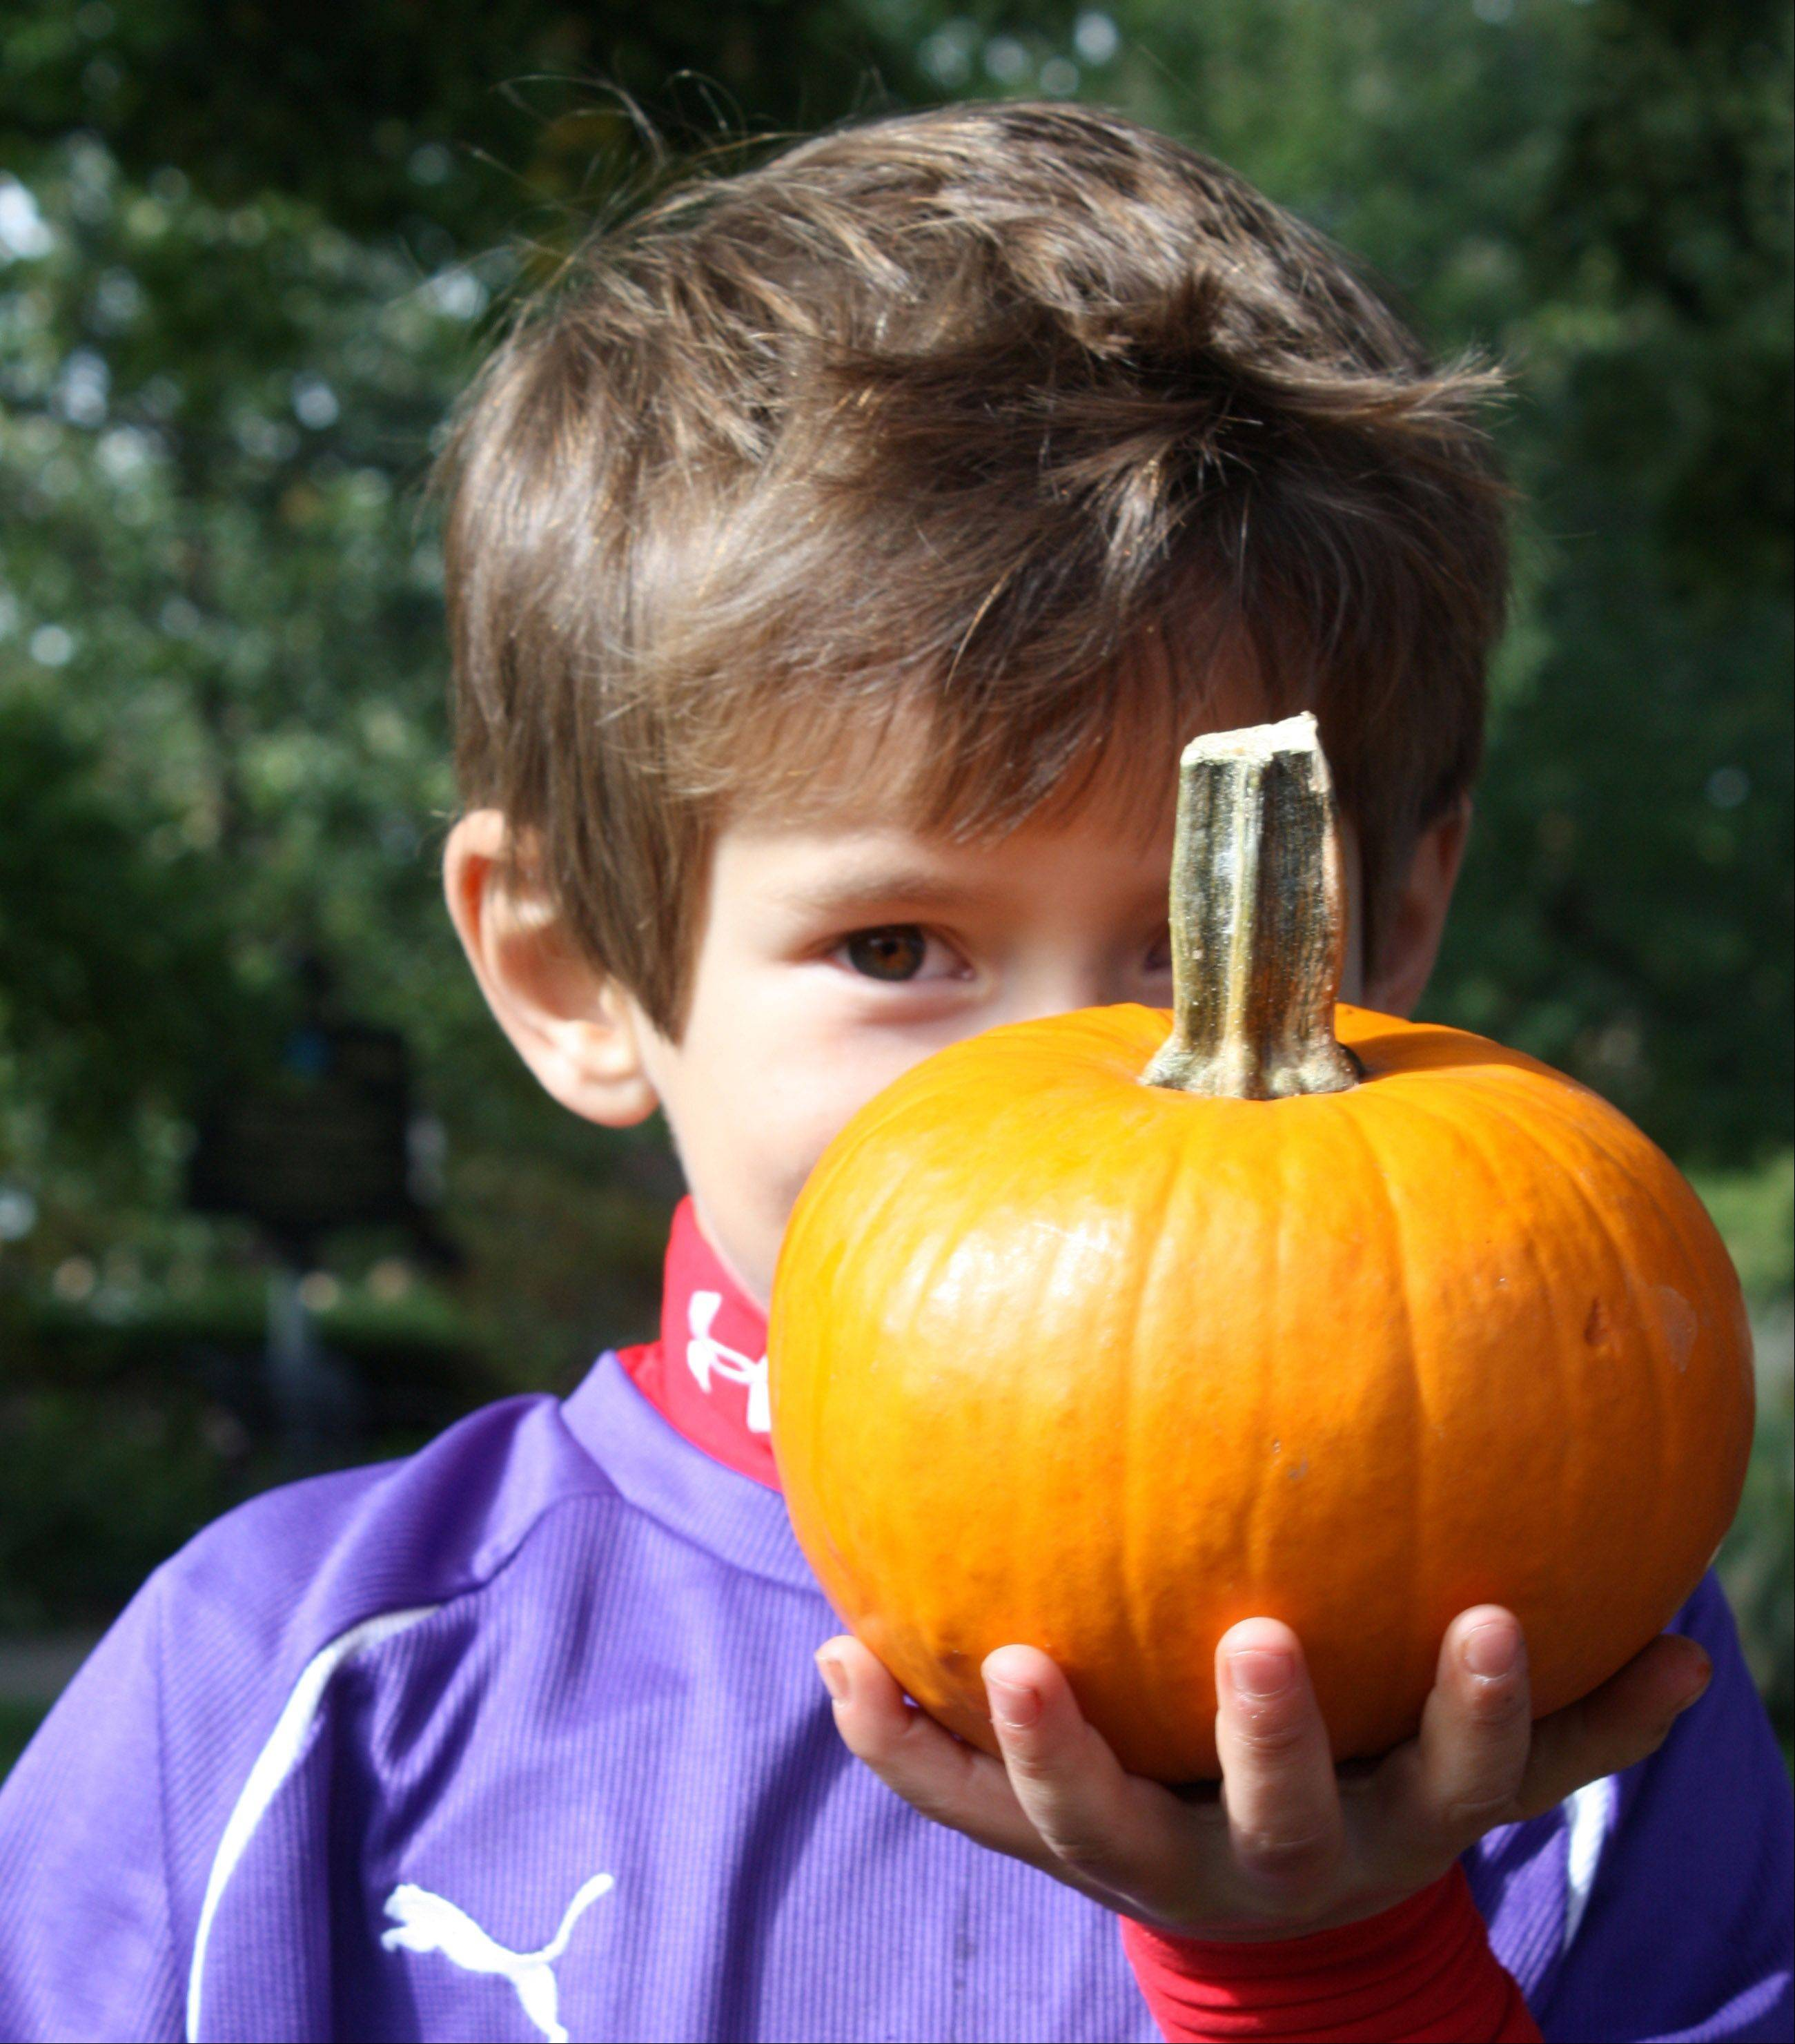 PumpkinFest, presented by the Libertyville Junior Woman's Club, is Saturday, Oct. 13, with plenty of pumpkins for children.